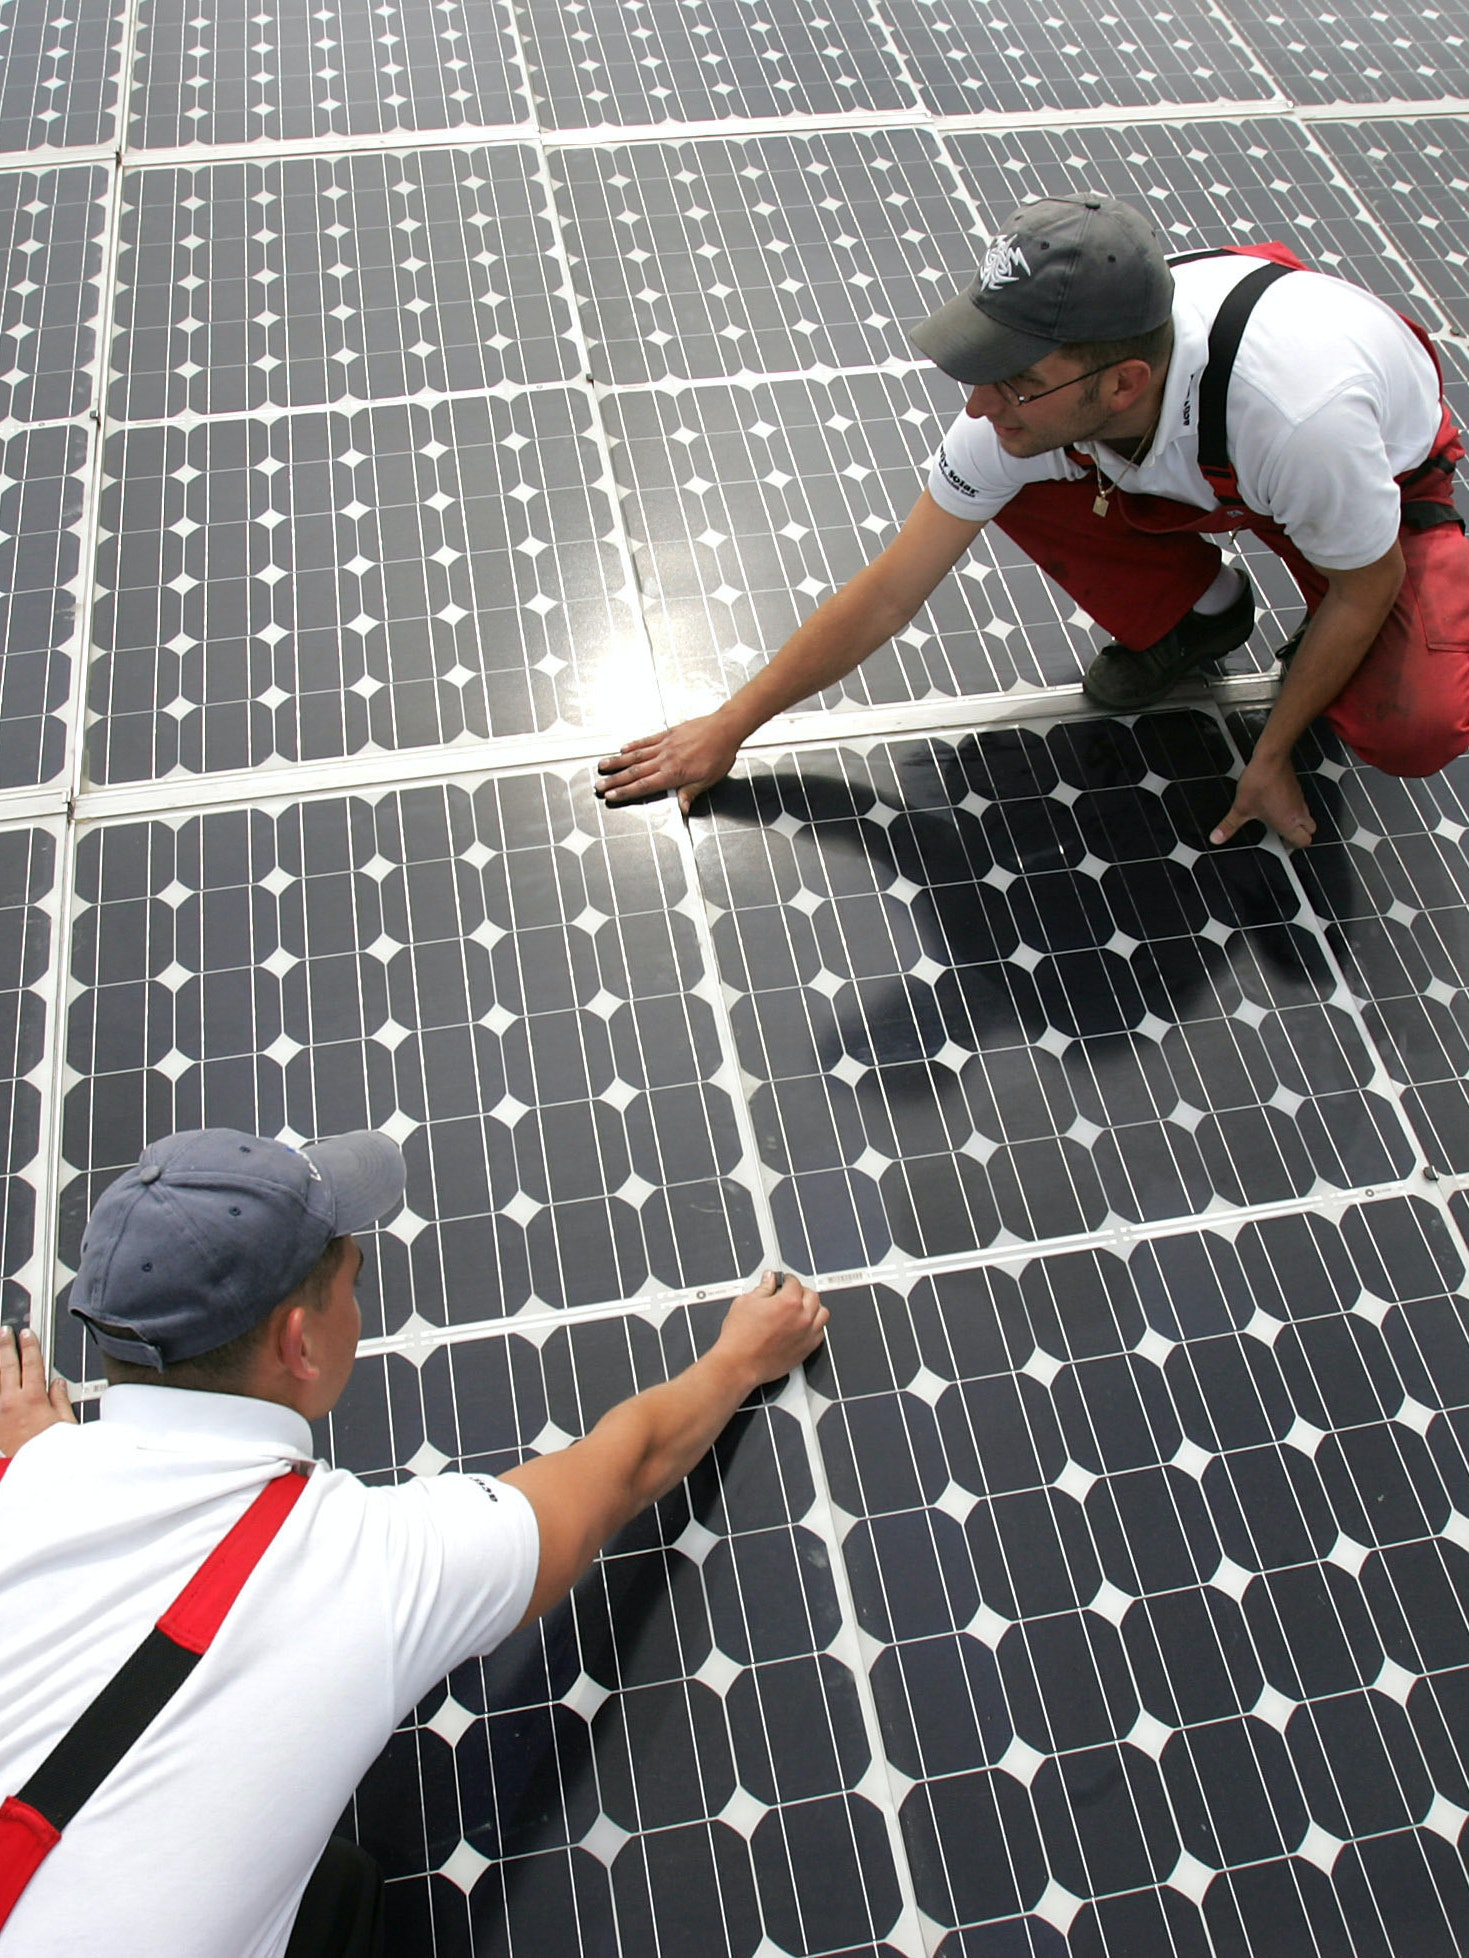 BUERSTADT, GERMANY - MAY 13: Two workers maintain solar panels on the roof of a warehouse on May 13, 2005 in Buerstadt, Germany. The 50,000 square meter system with a capacity of 4,5 megawatts per year represents the largest roof based solar system worldwide.  (Photo by Ralph Orlowski/Getty Images) *** Local Caption ***